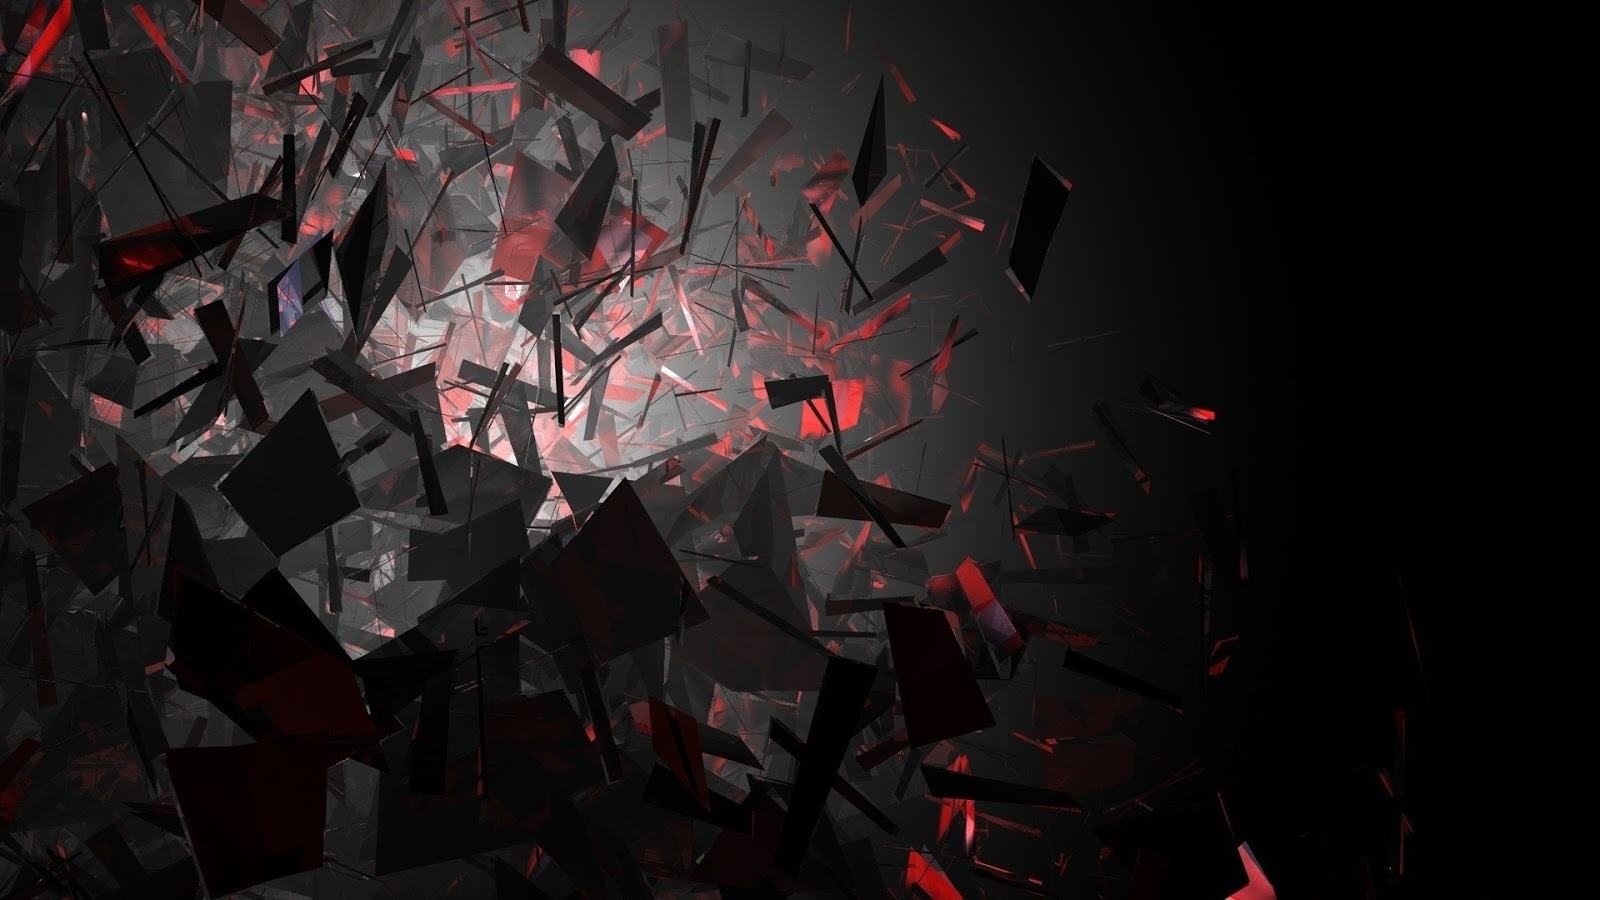 wallpapers 1080p 3d abstract wallpapers 1080p 3d abstract wallpapers 1600x900